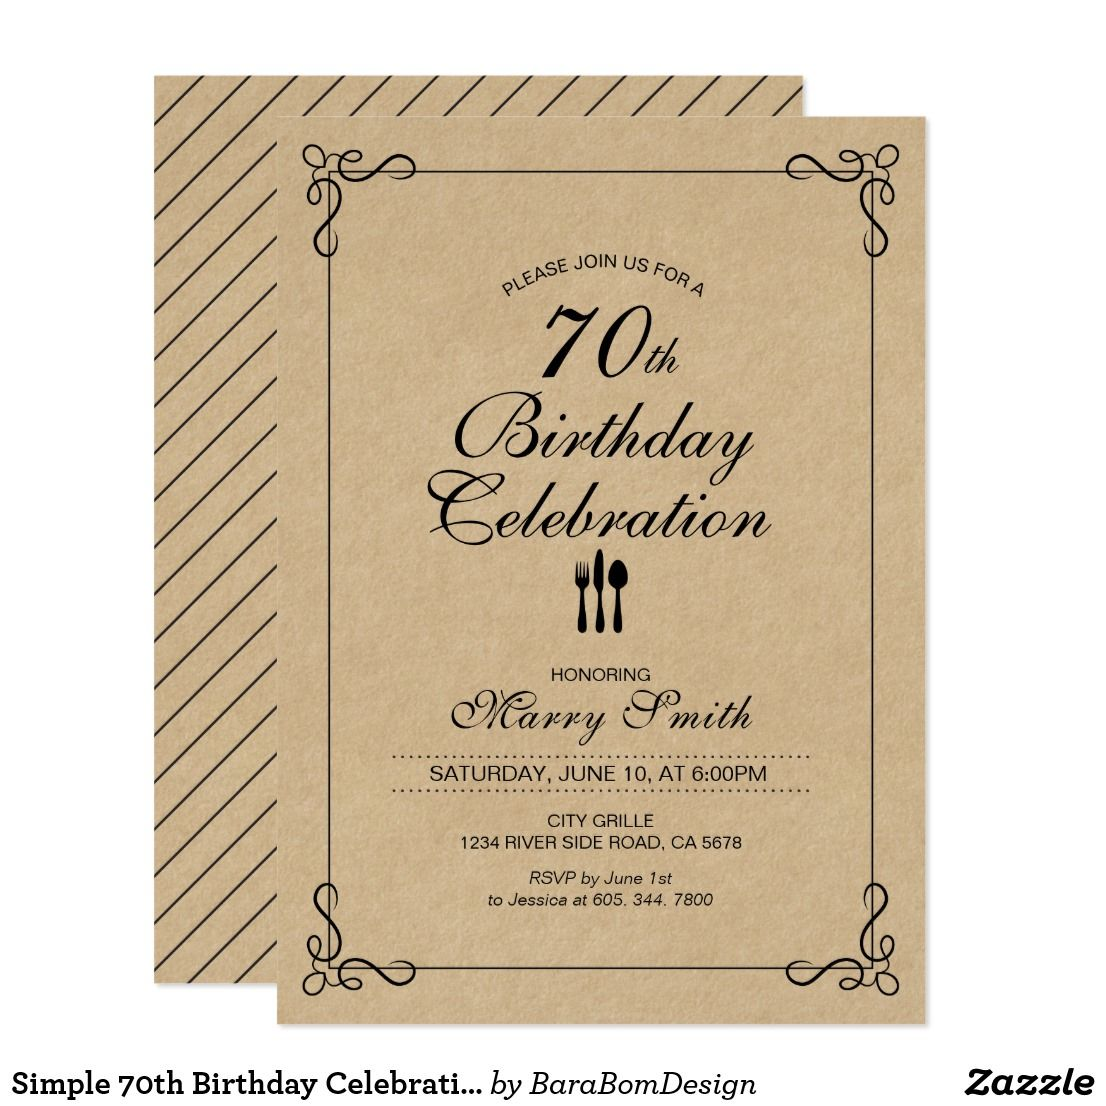 Simple 70th Birthday Celebration Party Invitation | Party ...